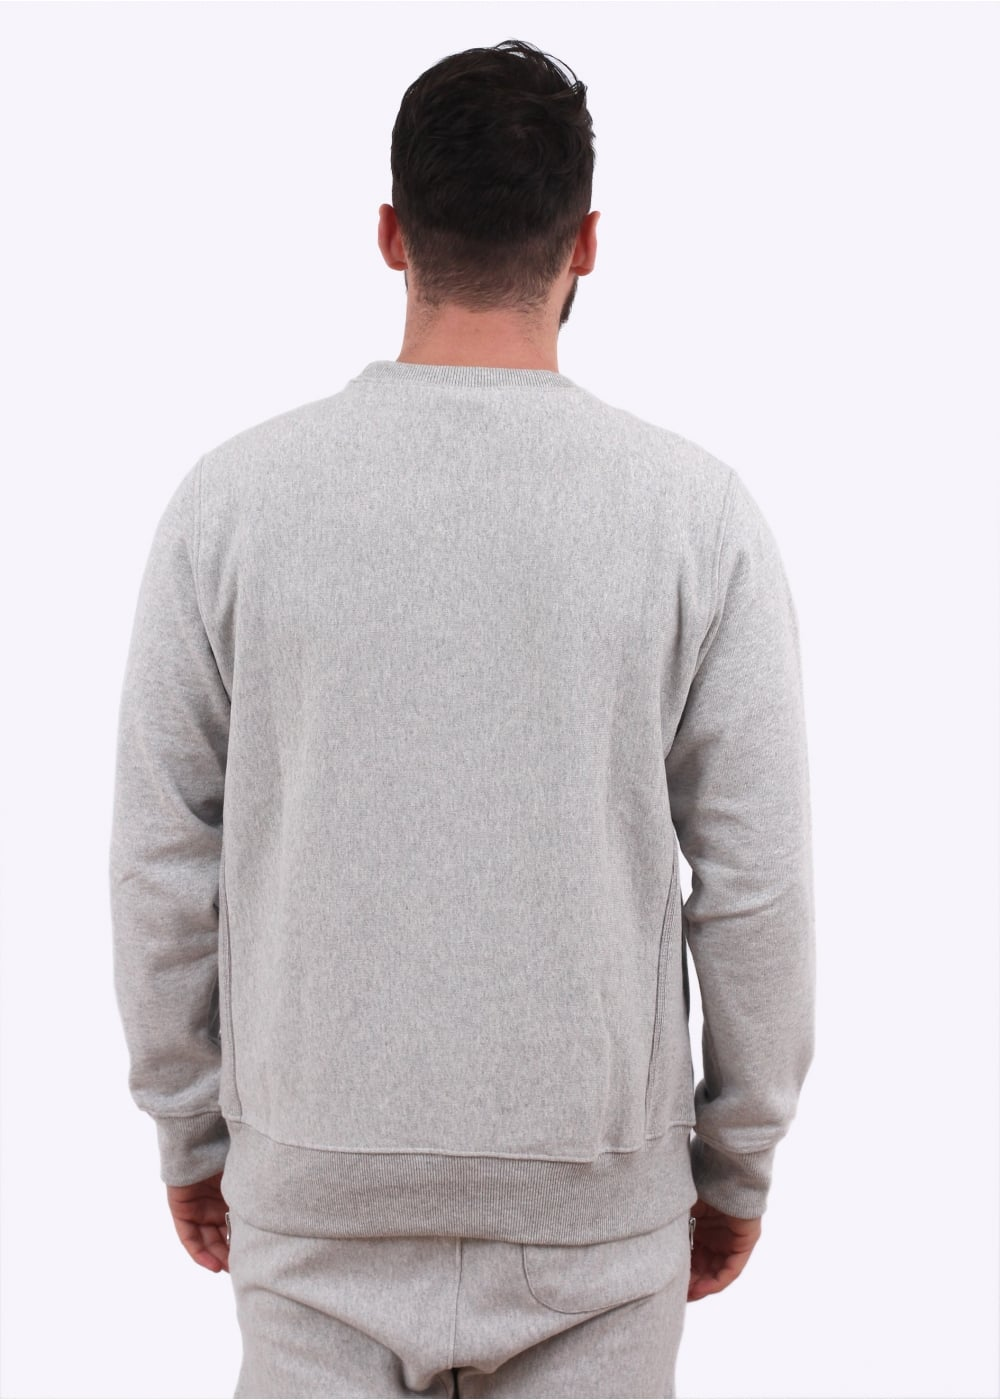 Champion X Beams Crewneck Sweater Light Grey Champion